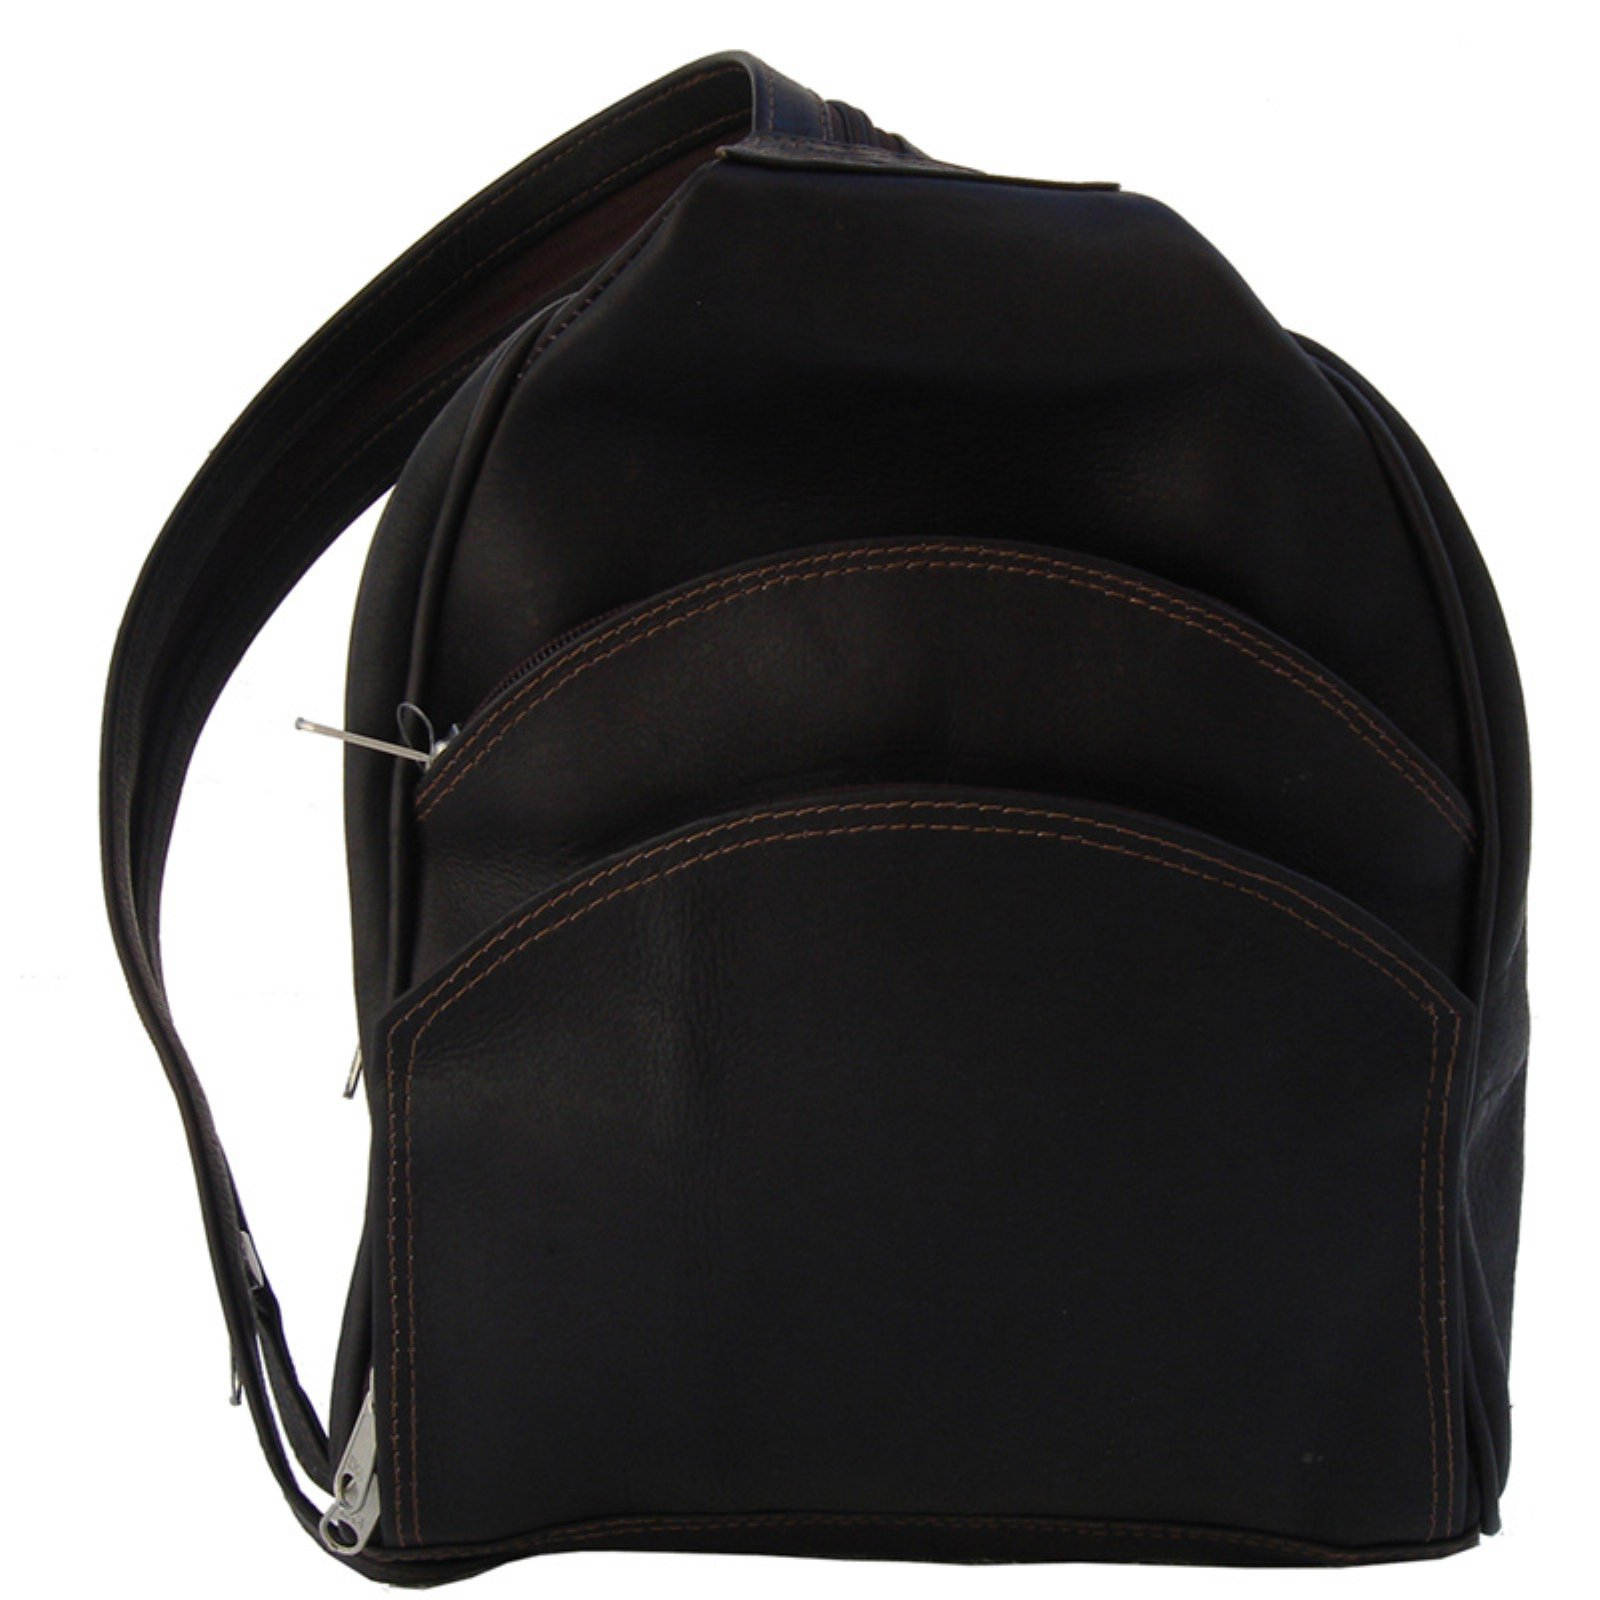 Piel Leather Backpack Sling - Chocolate